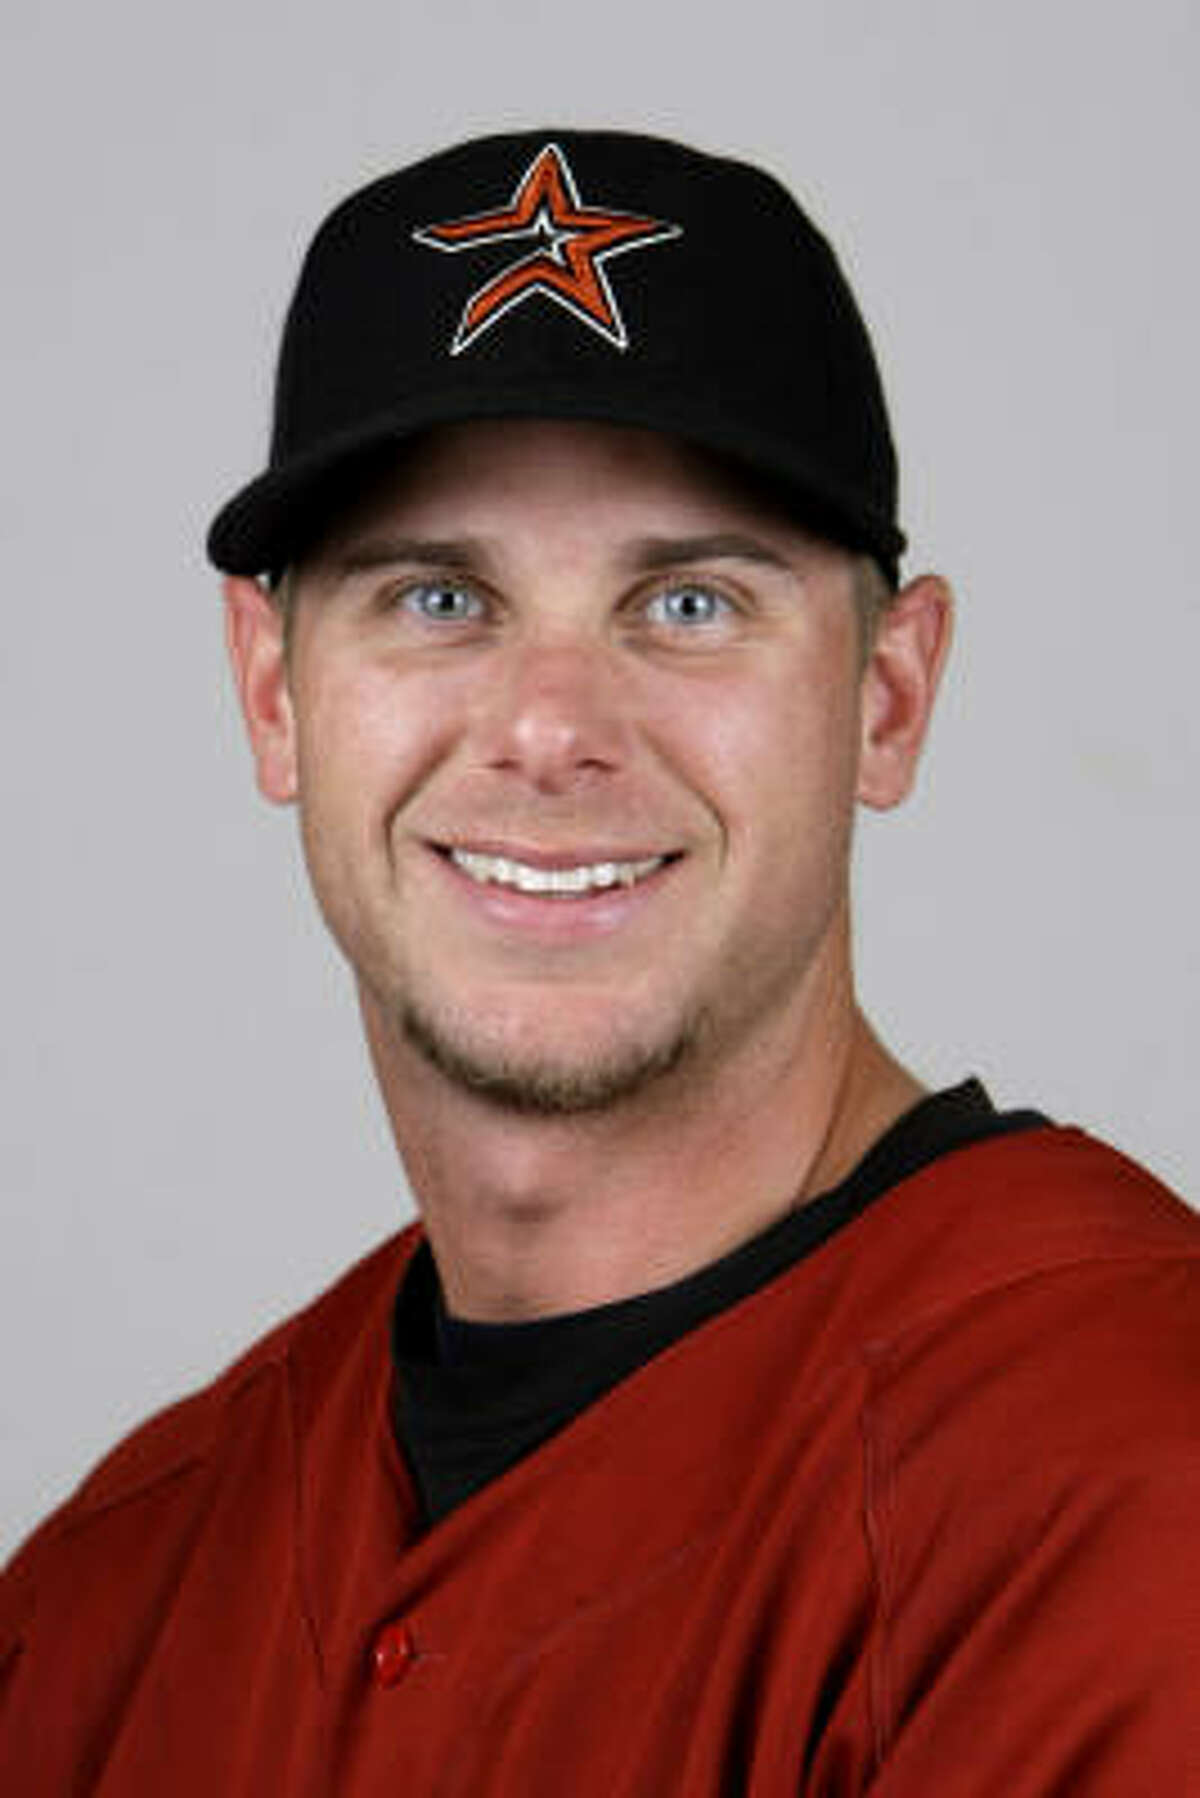 Houston Astros pitcher Brandon Backe was among 10 people arrested during an incident involving Galveston police at a hotel bar.